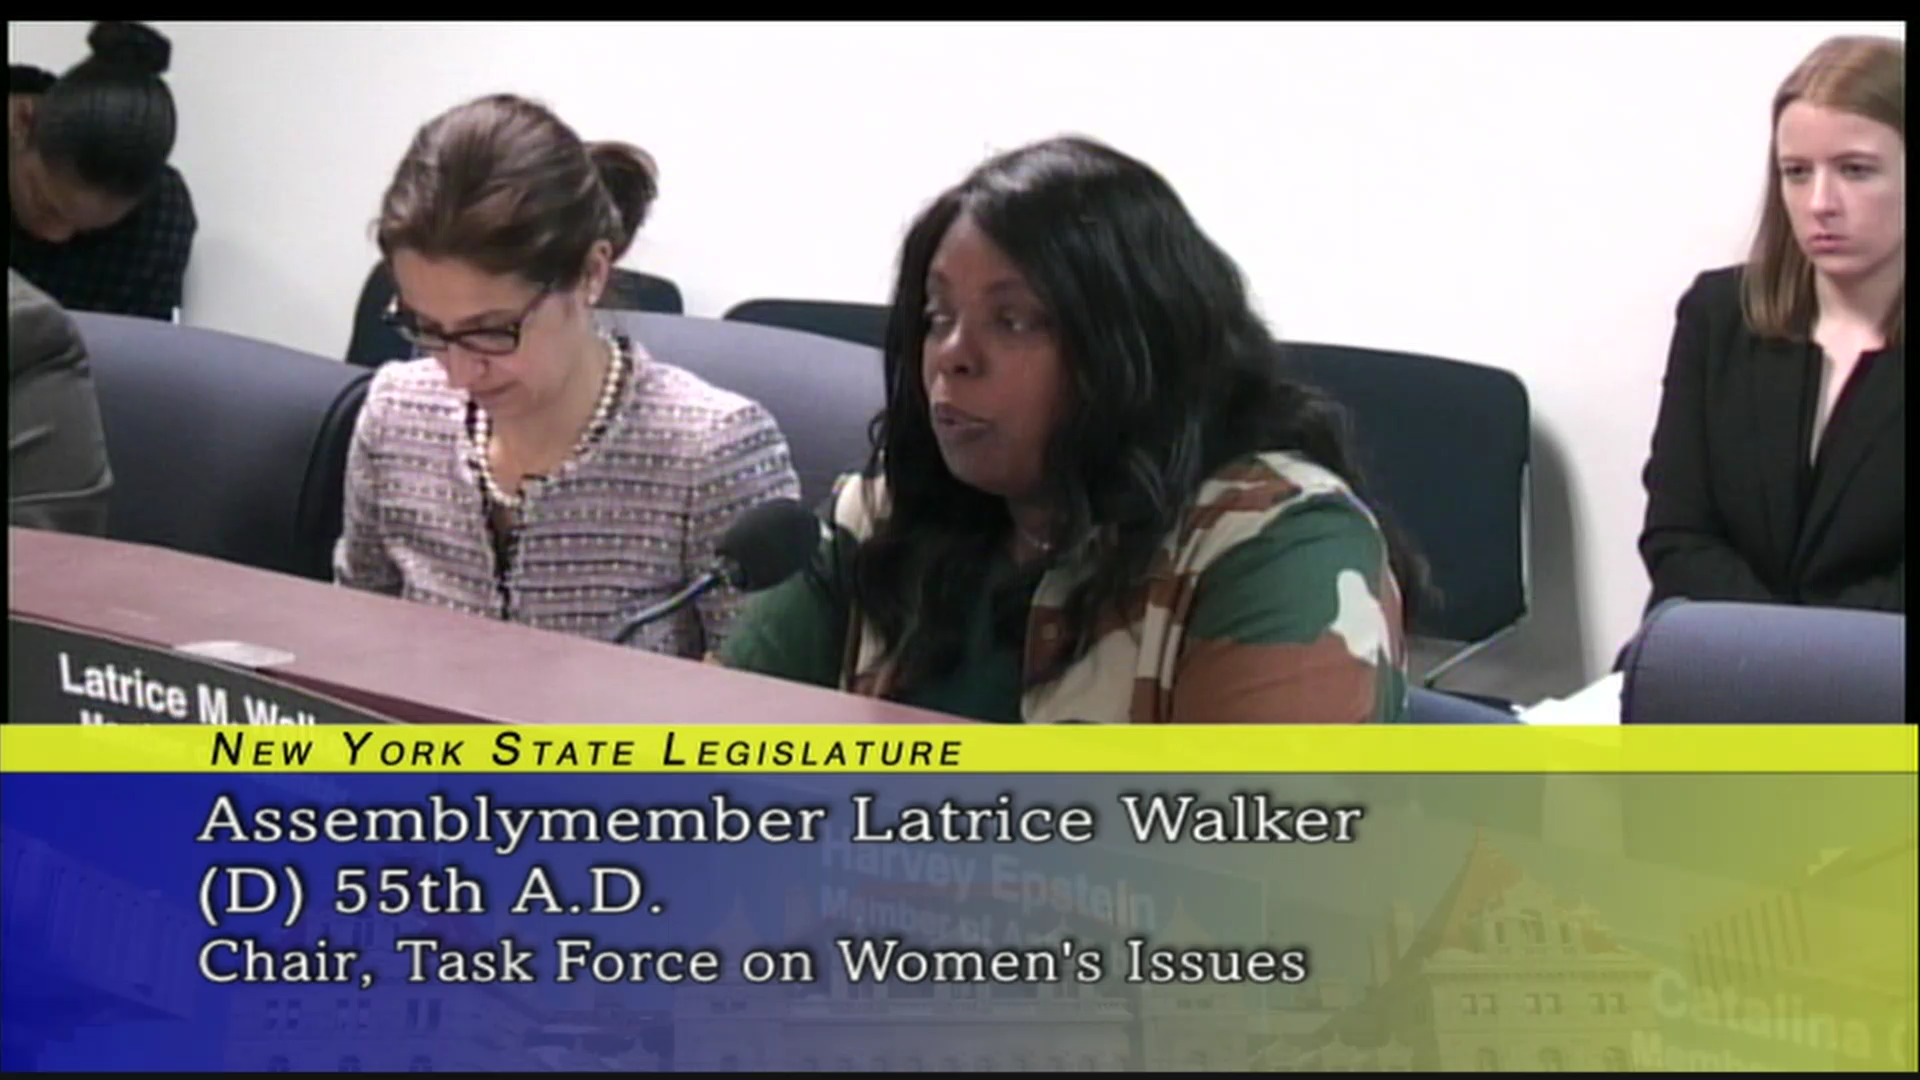 Walker: Public Hearing on Sexual Harassment in the Workplace